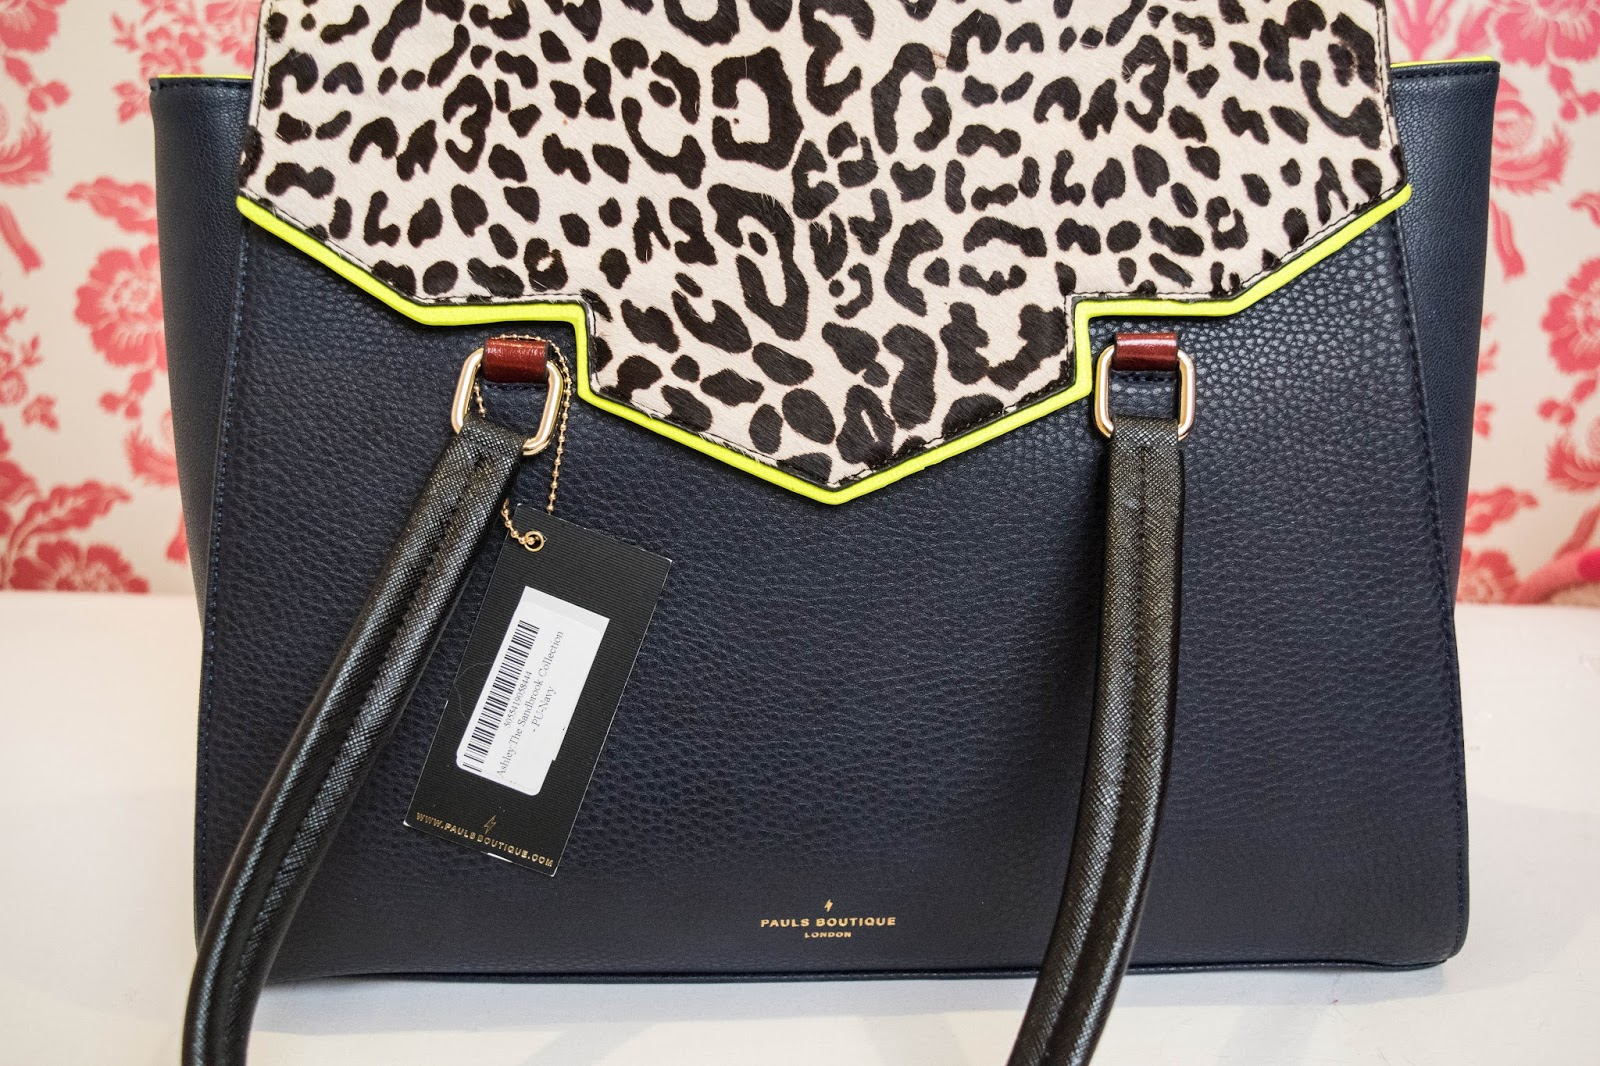 157c0e7329b I m a big fan of leopard print, and as soon as I saw this bag I knew it was  the one. It s made with soft black leather, so looks very professional, ...